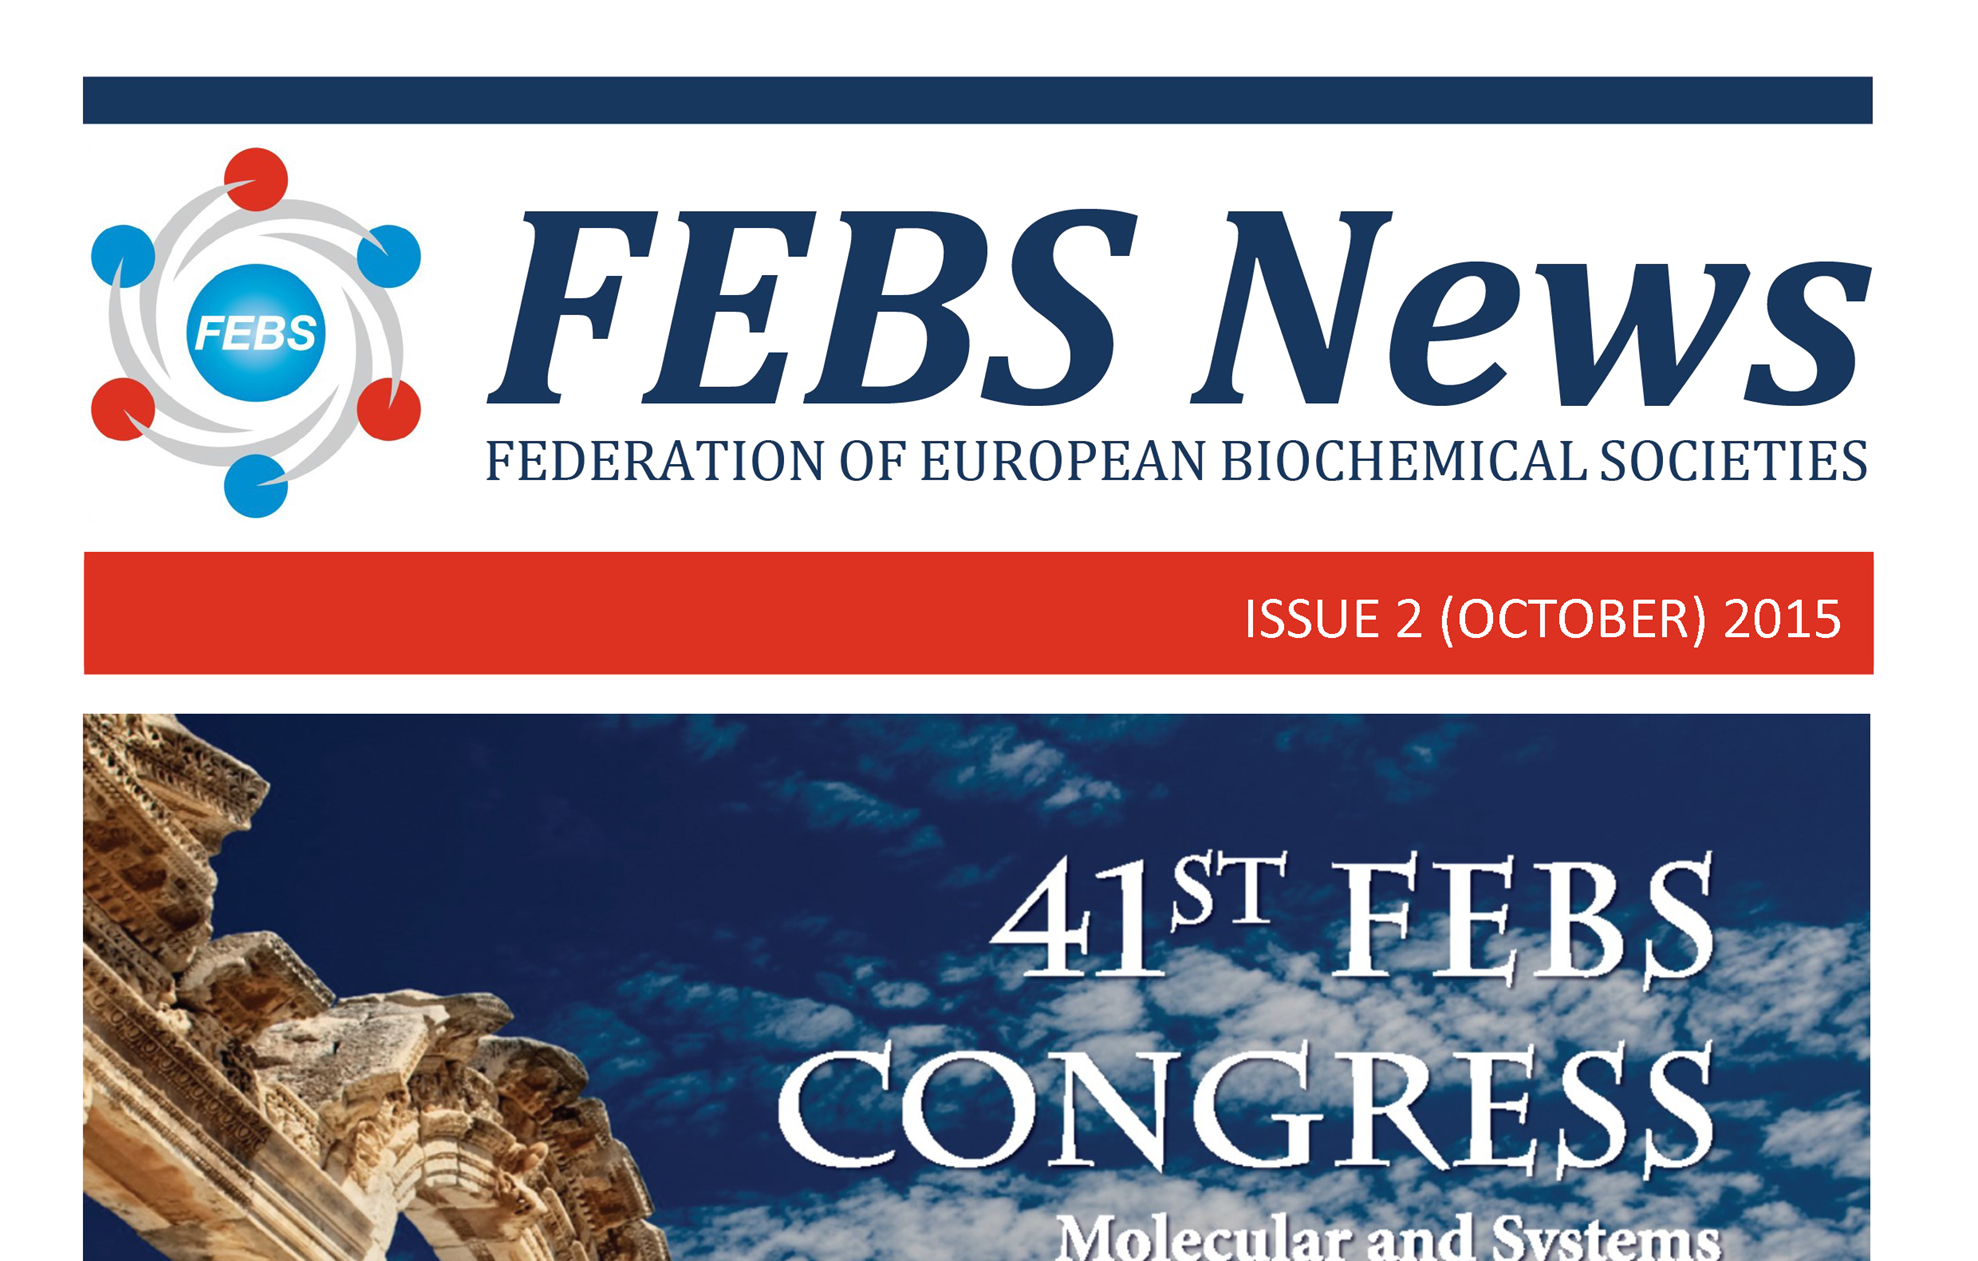 The October 2015 issue of FEBS News is out!